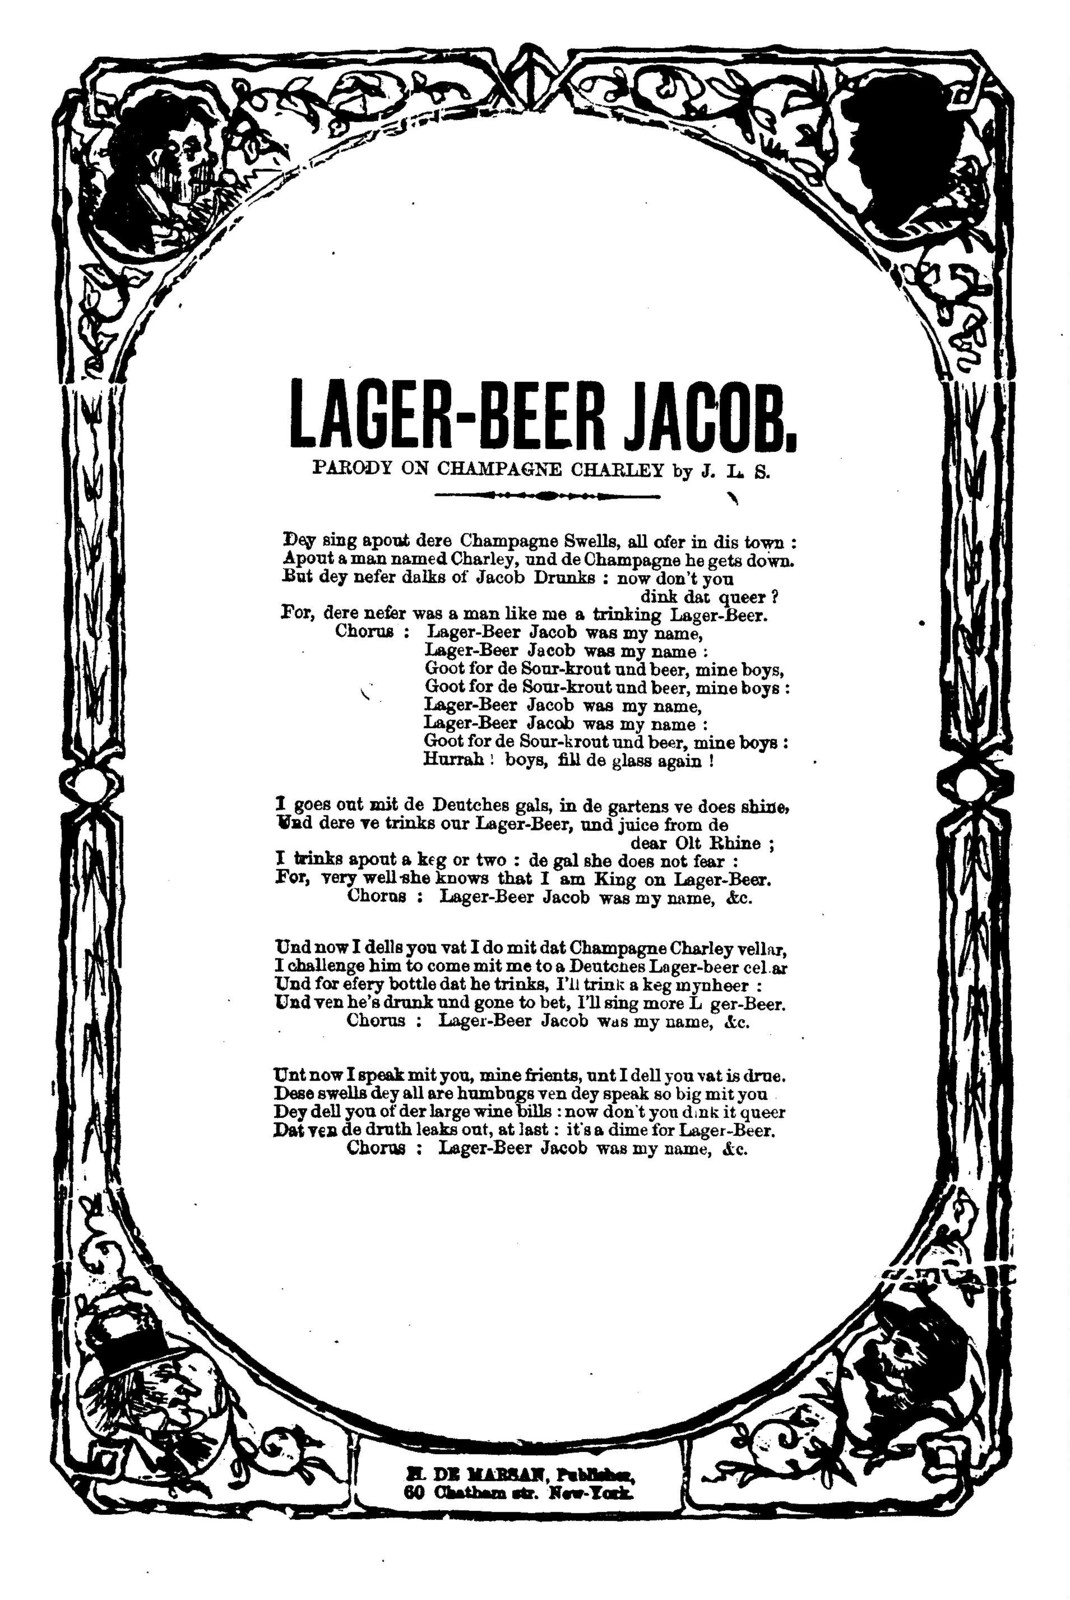 Lager-beer Jacob. Parody on Champagne Charley. H. De Marsan, Publisher, 60 Chatham Street, N. Y